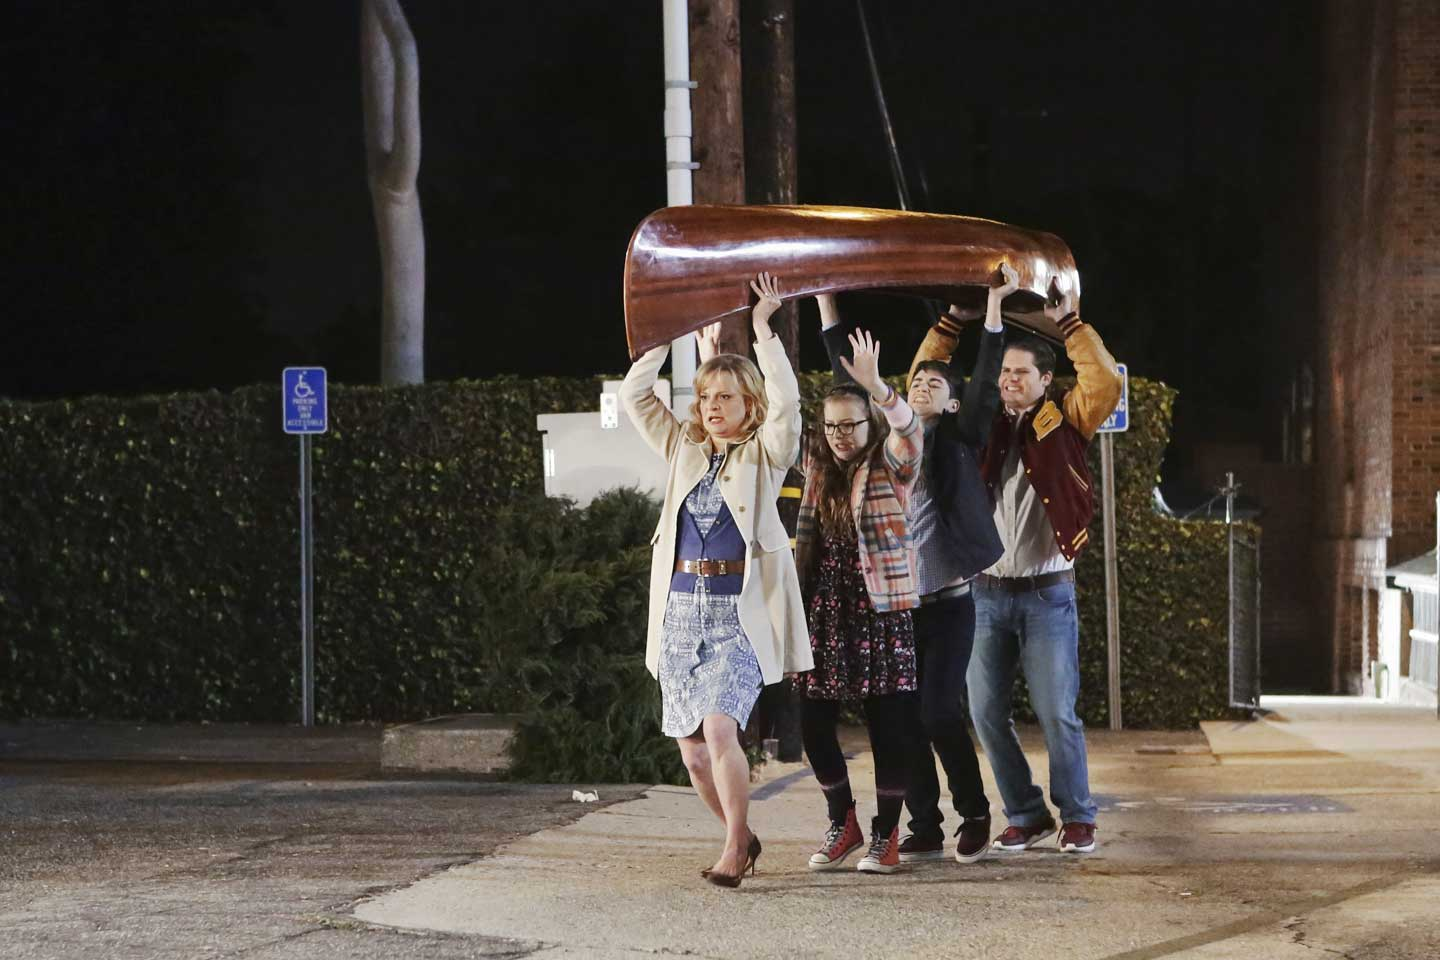 Family secrets abound in ABC's Real O'Neals